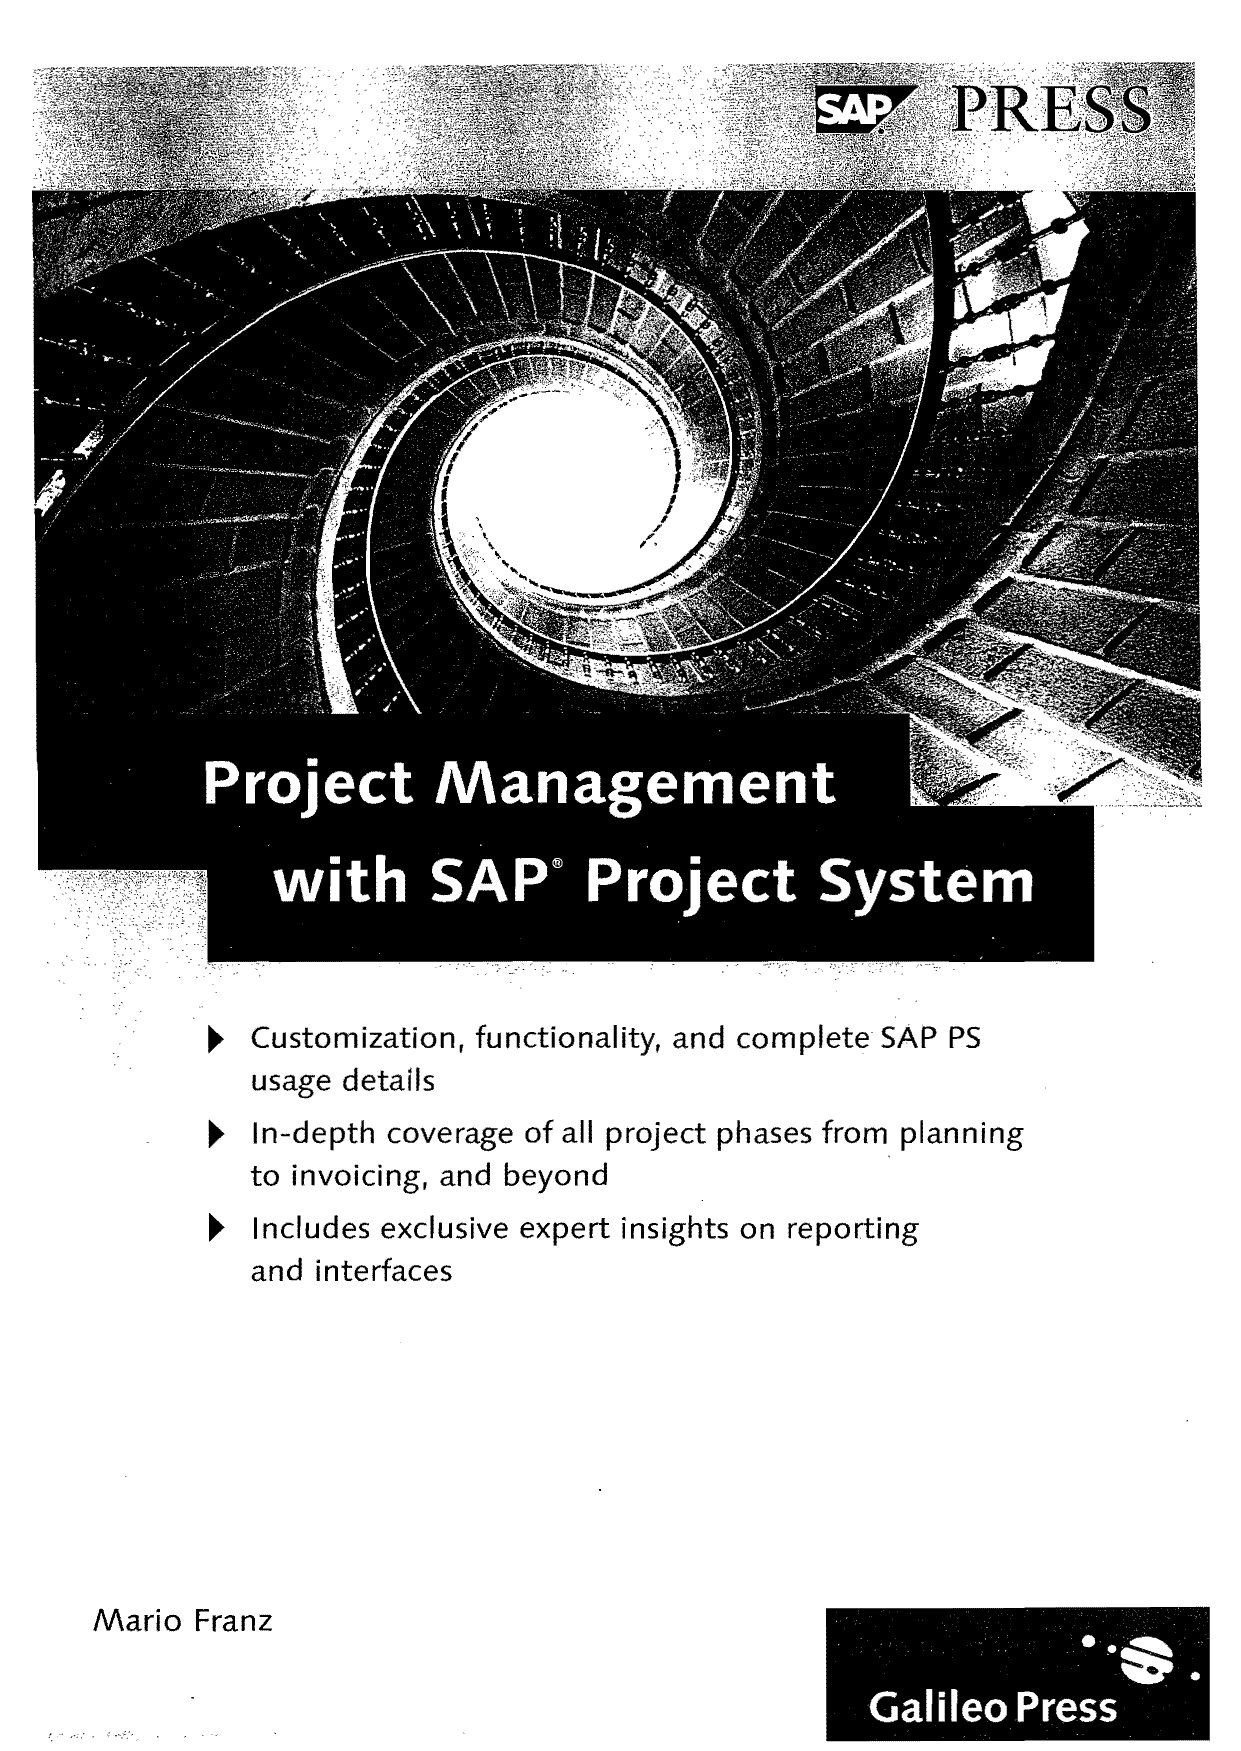 SAP Press - Project Management with SAP Project System (3rd